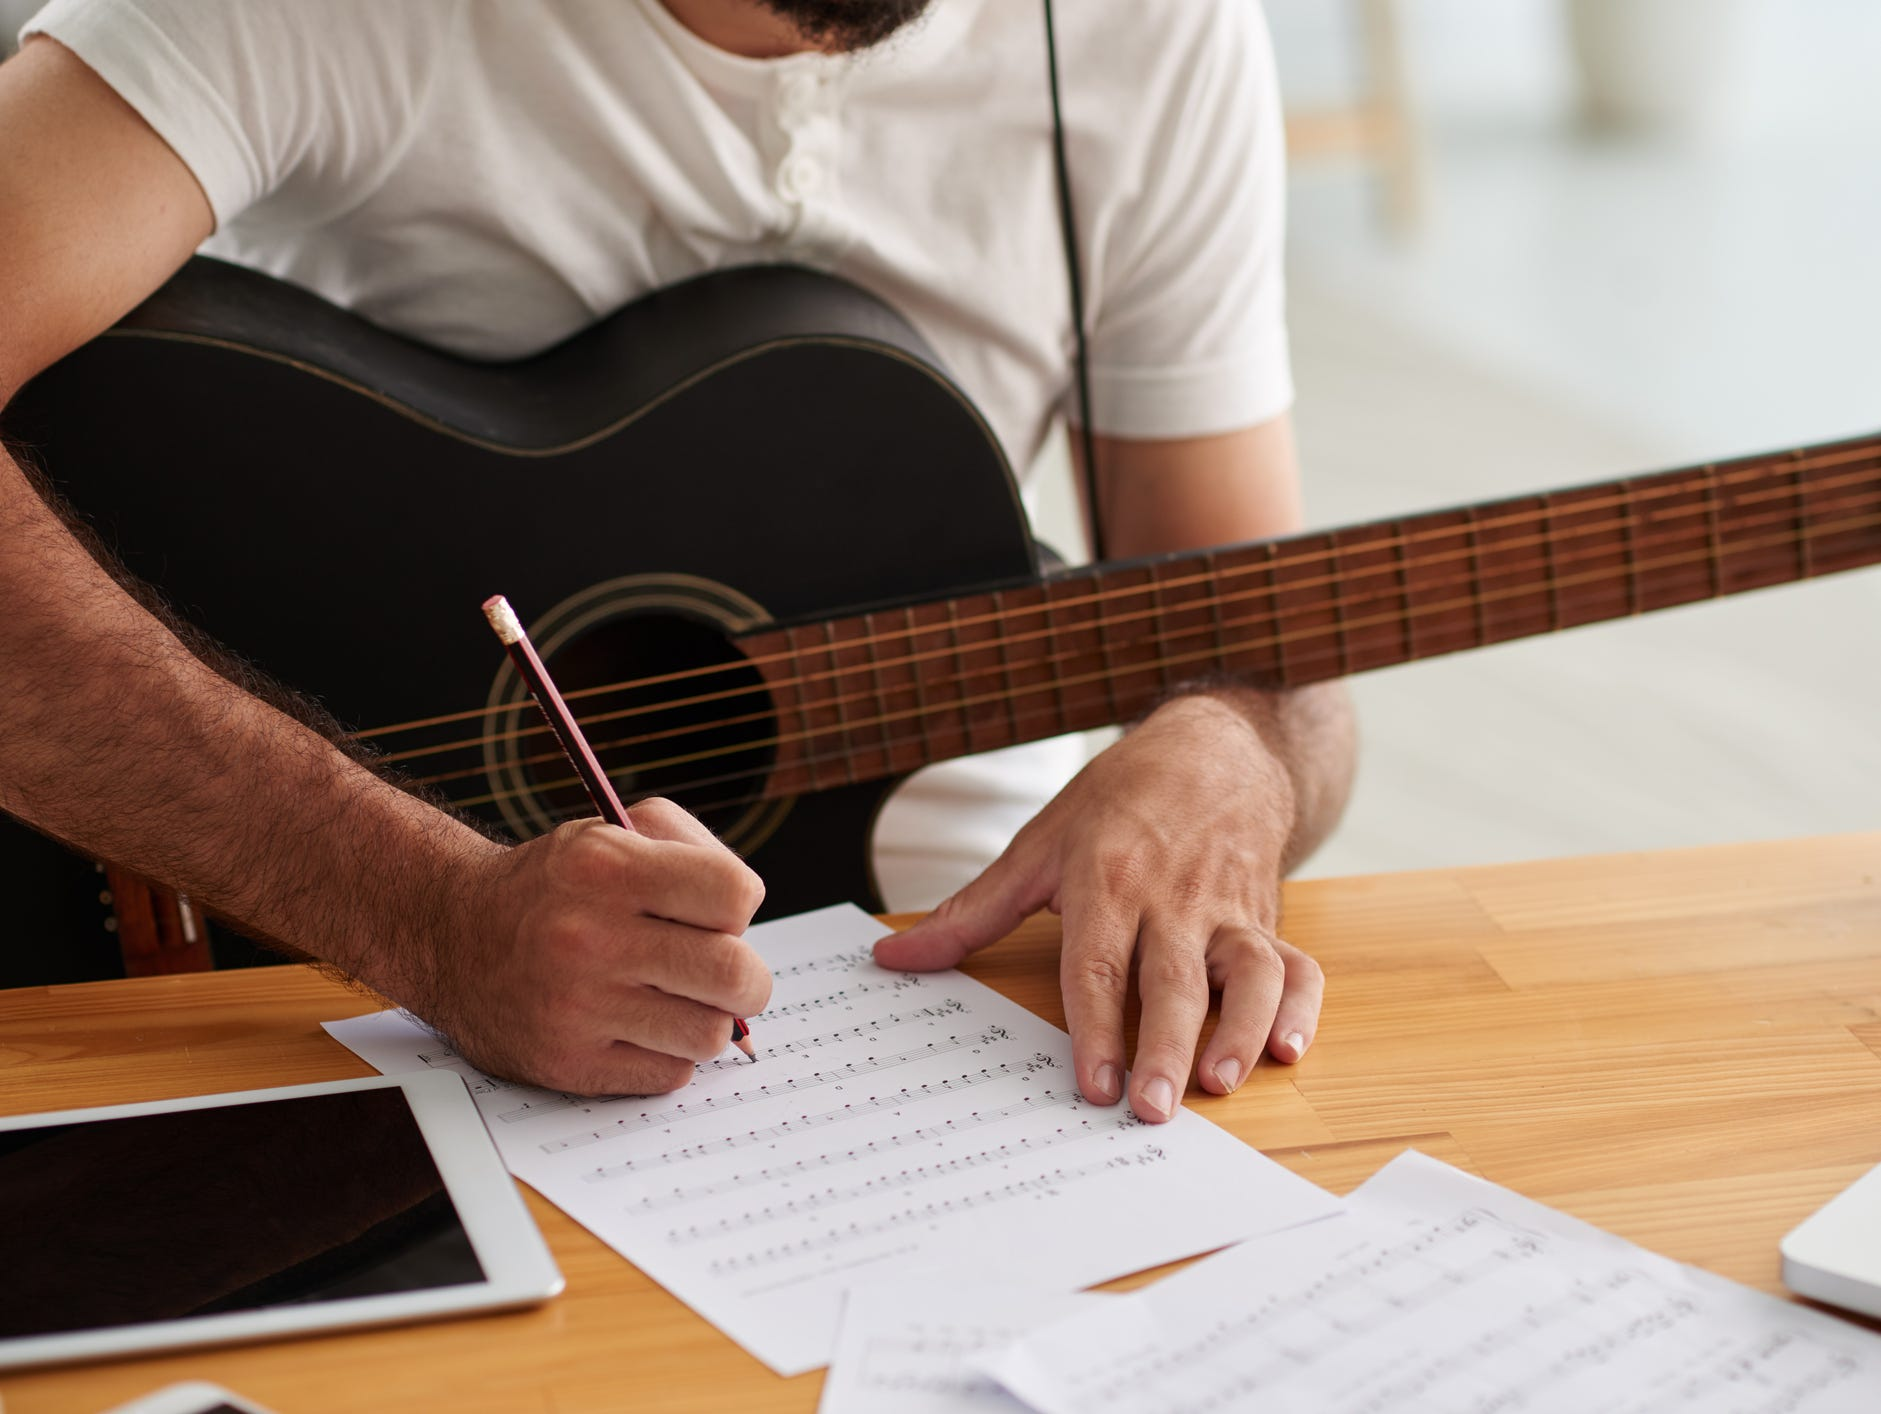 A four-week course for songwriters taught by a Nashville industry professional and recording artist.